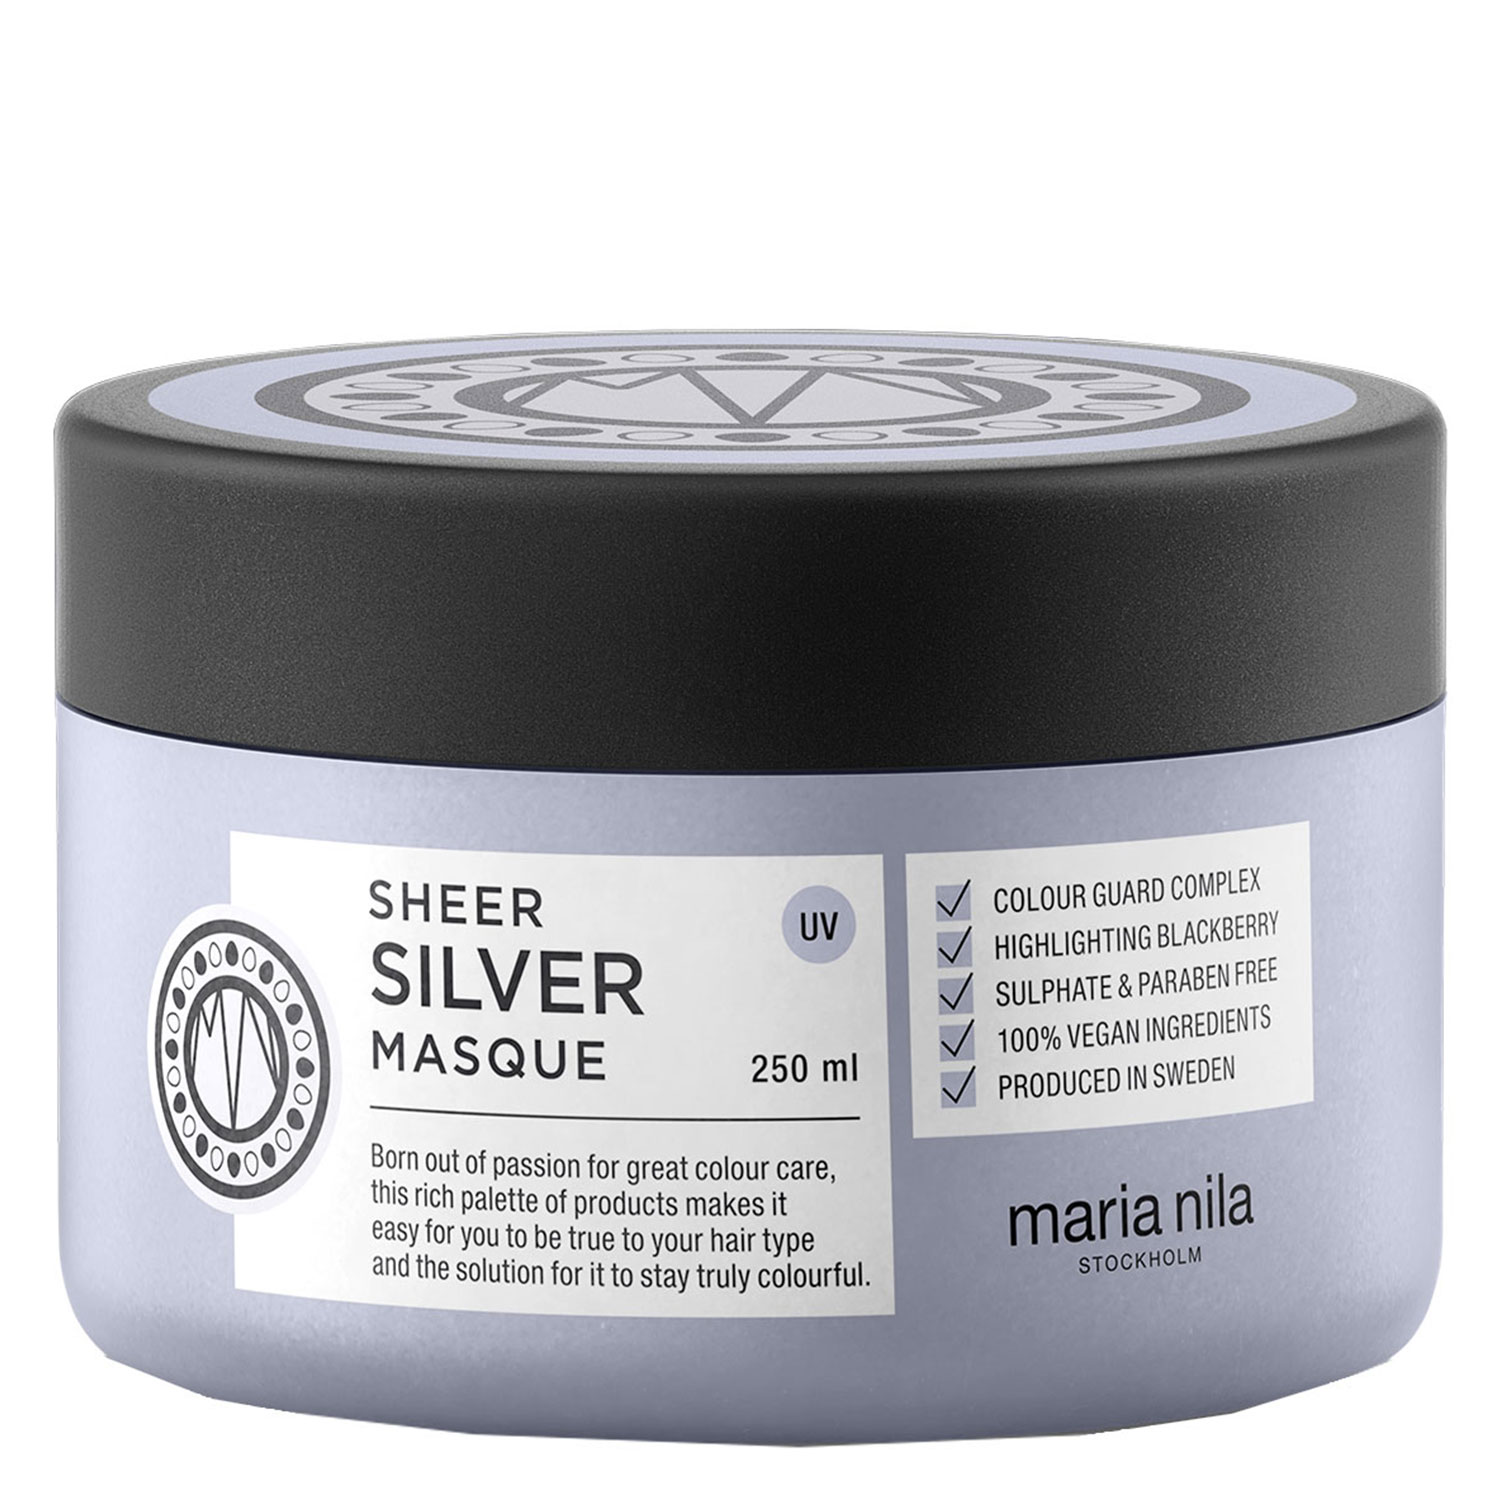 Care & Style - Sheer Silver Masque